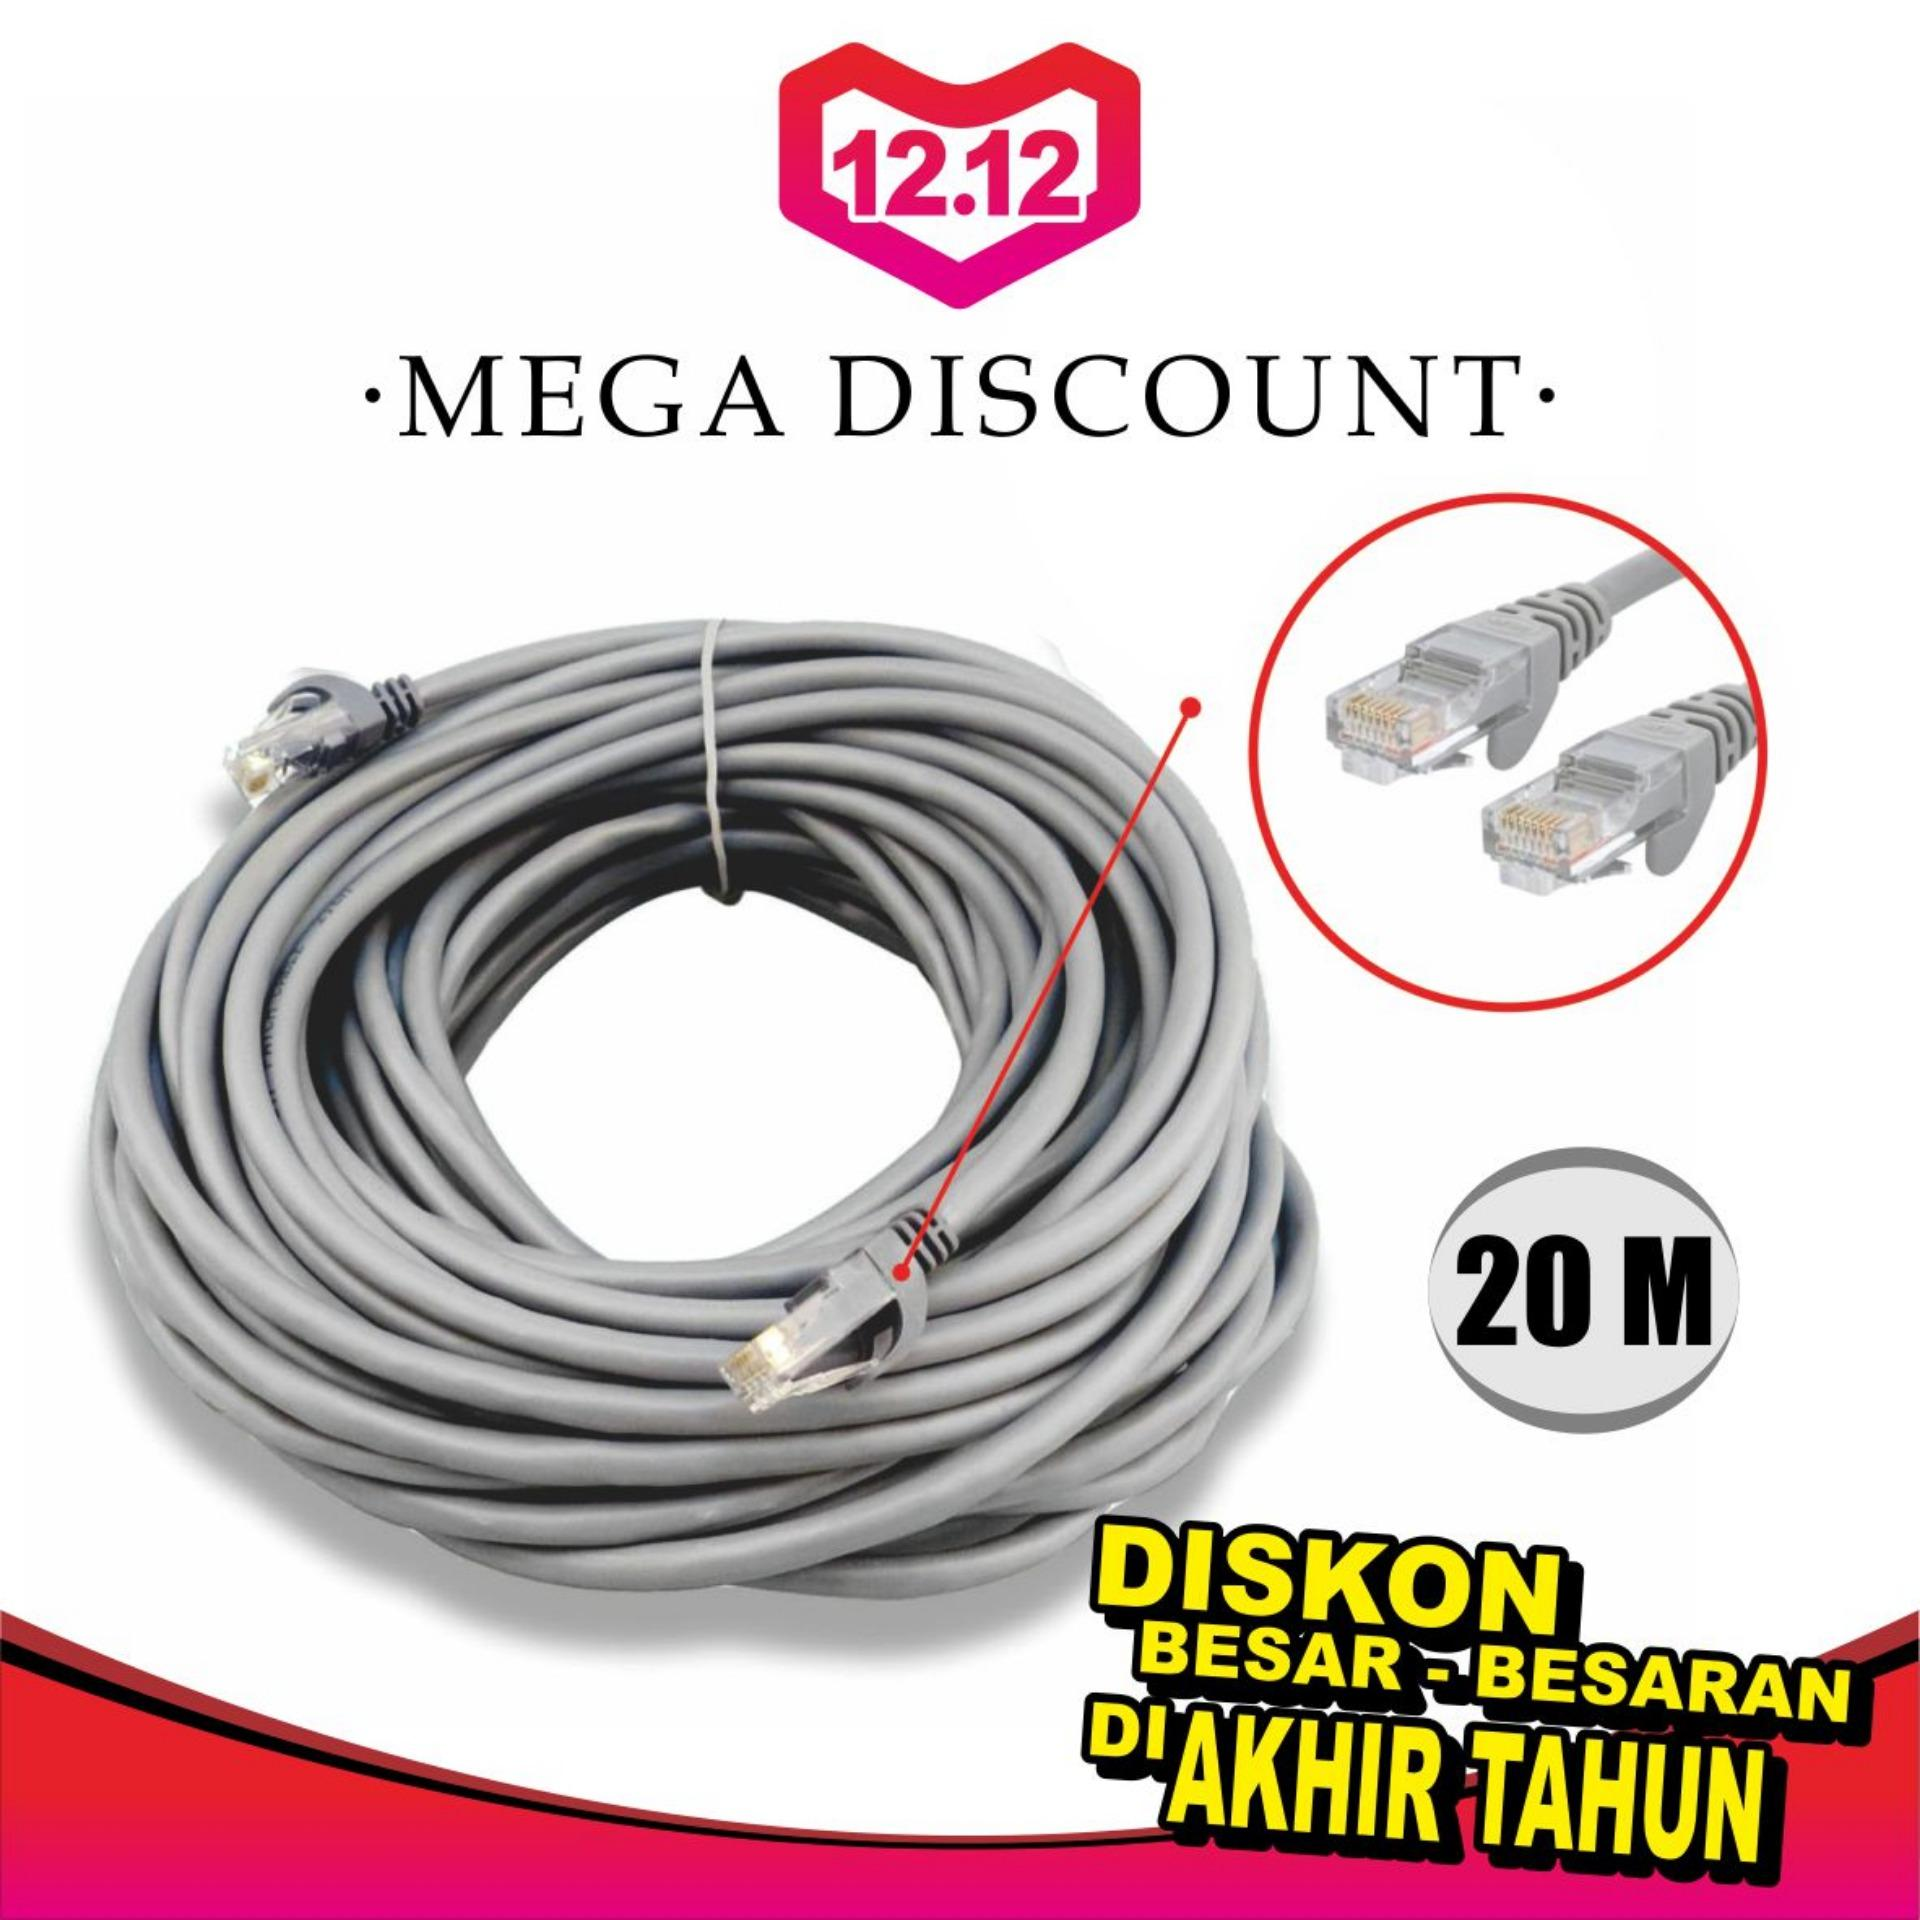 Wei Tech Kabel Lan Jadi Cat 5e 20 Meter By Weitech.